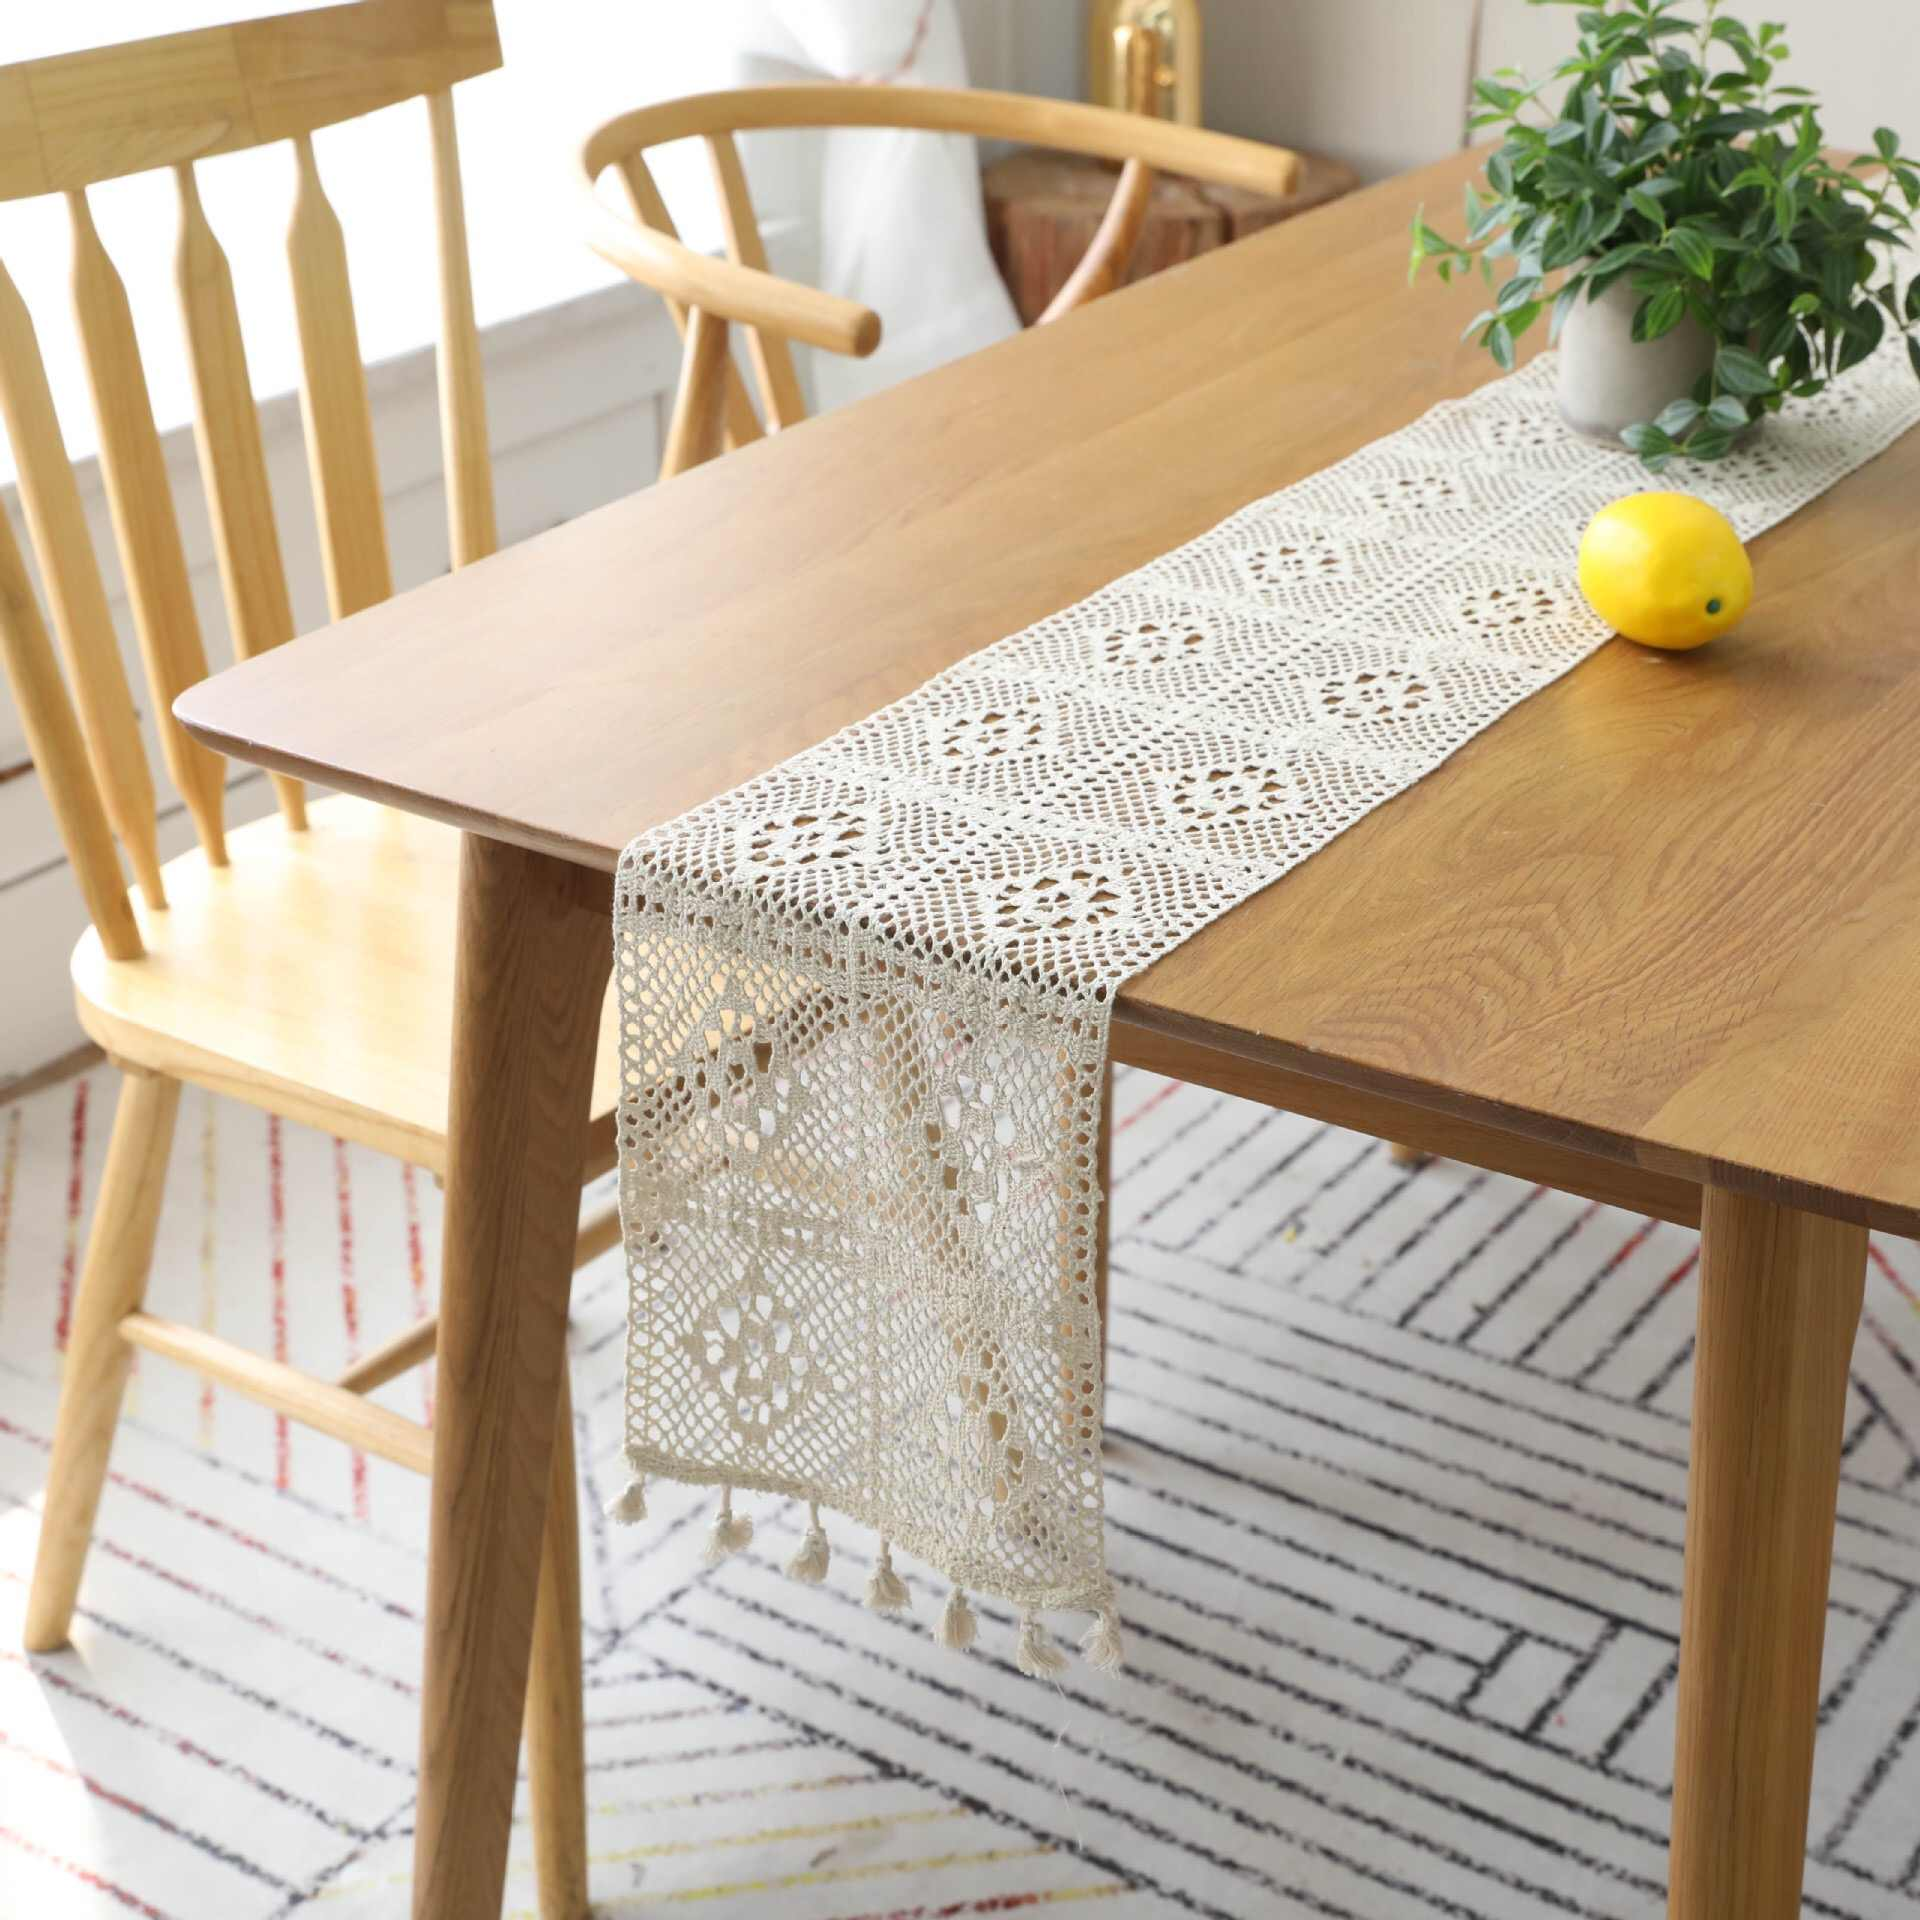 Beige Crochet Lace Table Runner With Tassel Cotton Tablecloth Runner Coffee Bed Runners For Wedding Hollow Christmas Decor Table Runners Aliexpress